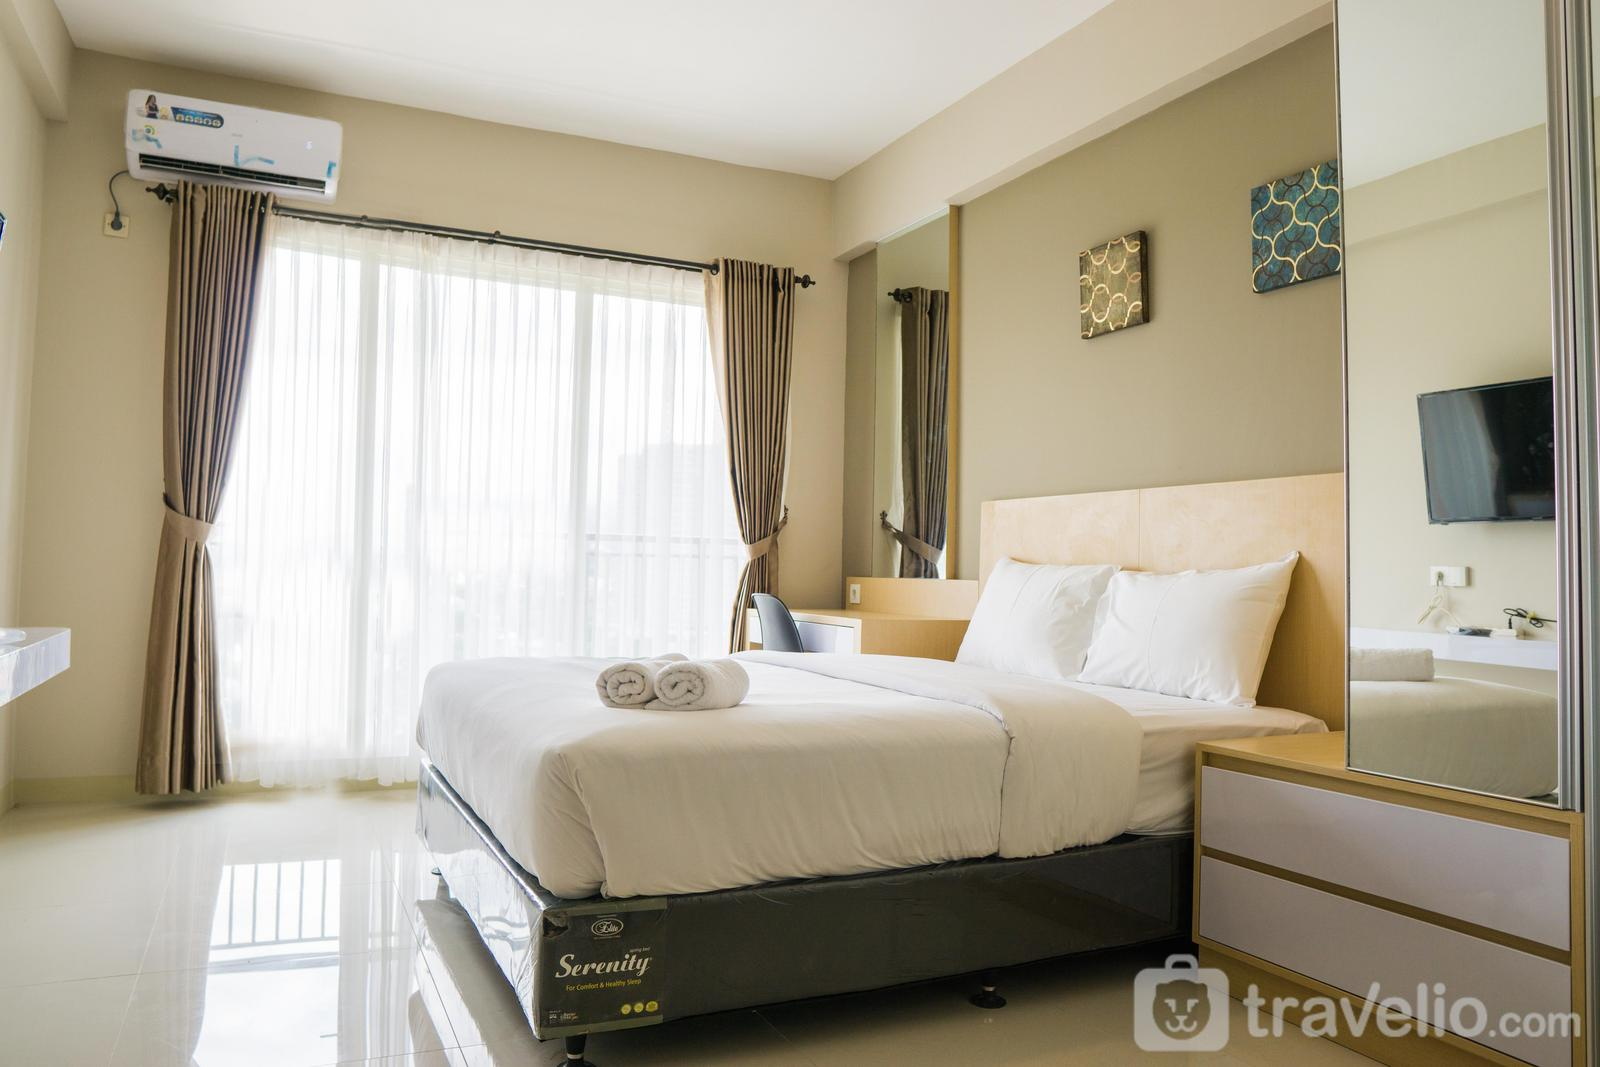 Apartemen Galeri Ciumbuleuit 3 - Bright Studio Apartment at Galeri Ciumbuleuit 3 By Travelio